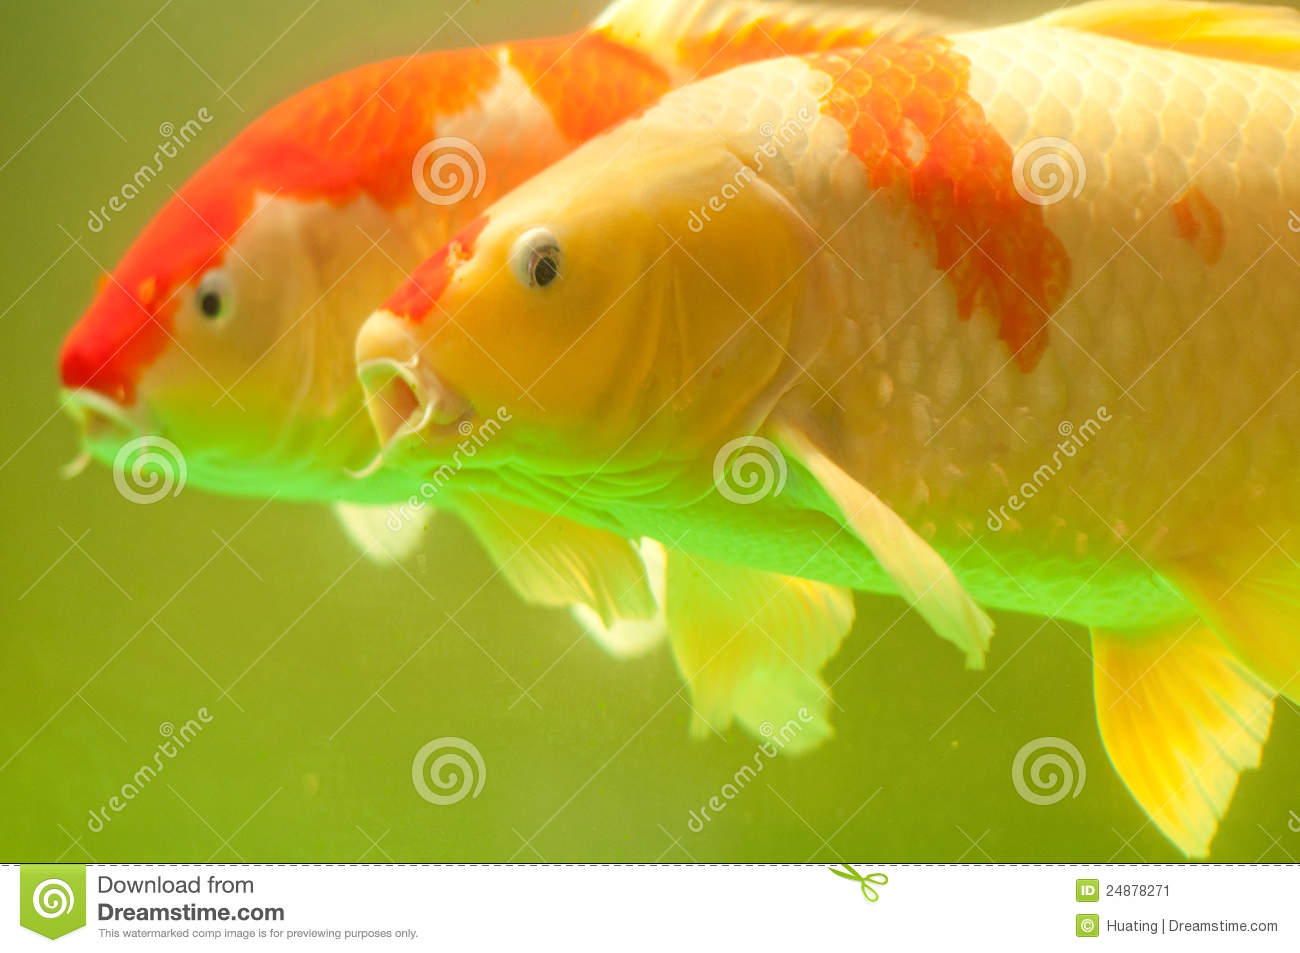 Couple of koi fish stock image image 24878271 for Koi fish swimming pool